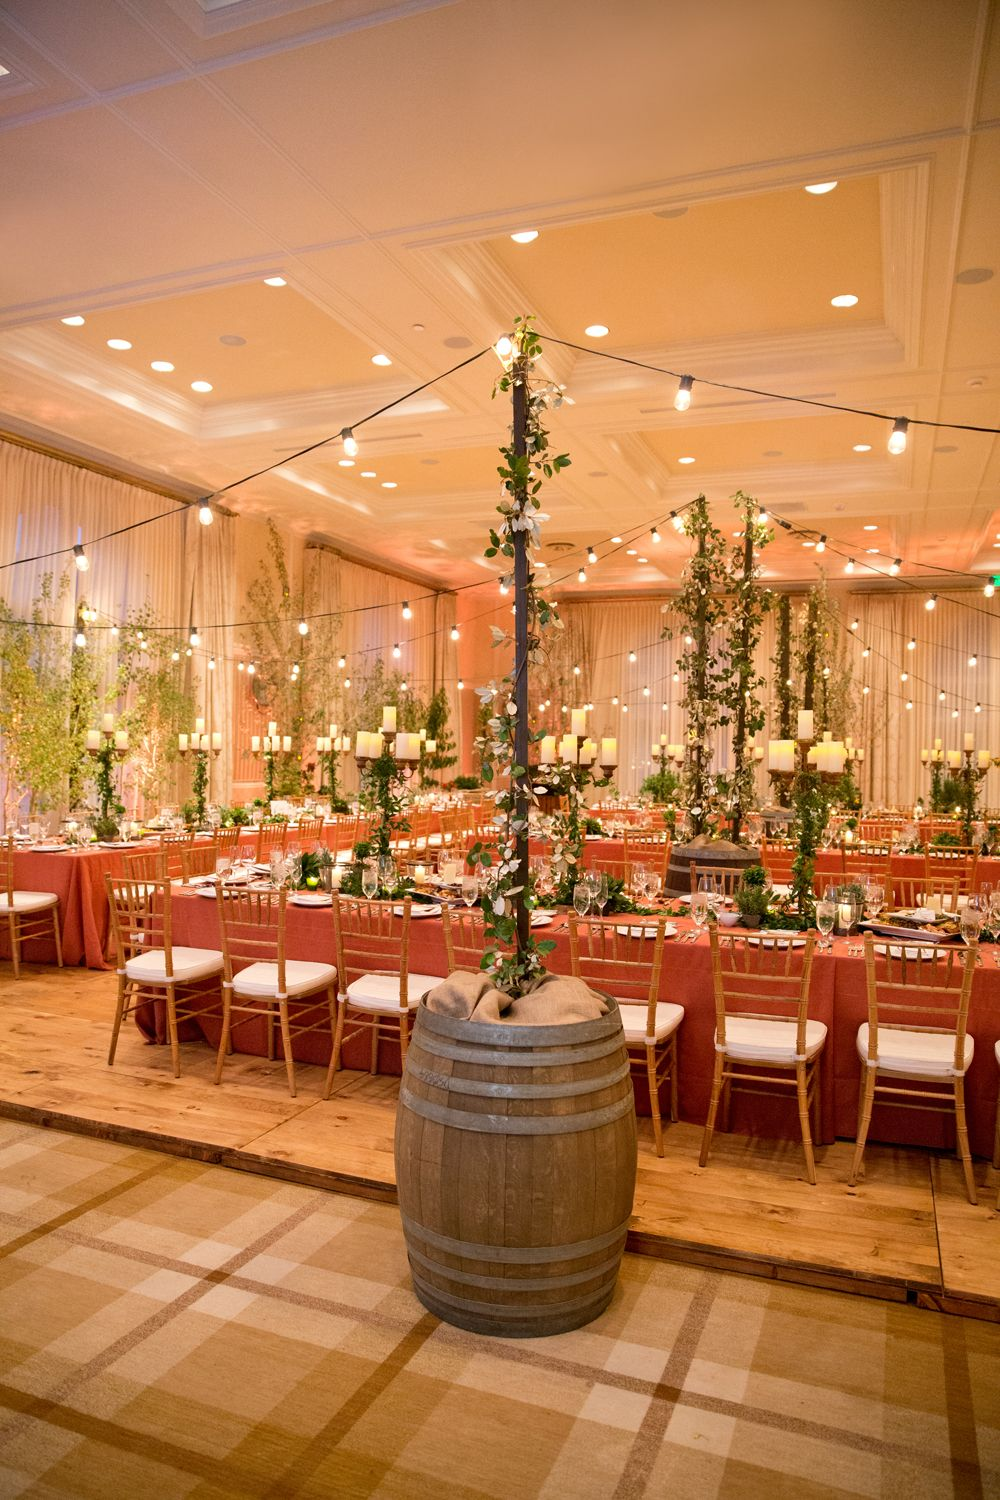 Fall Wedding Reception Dinner Rustic Country Wine Barrels Orange